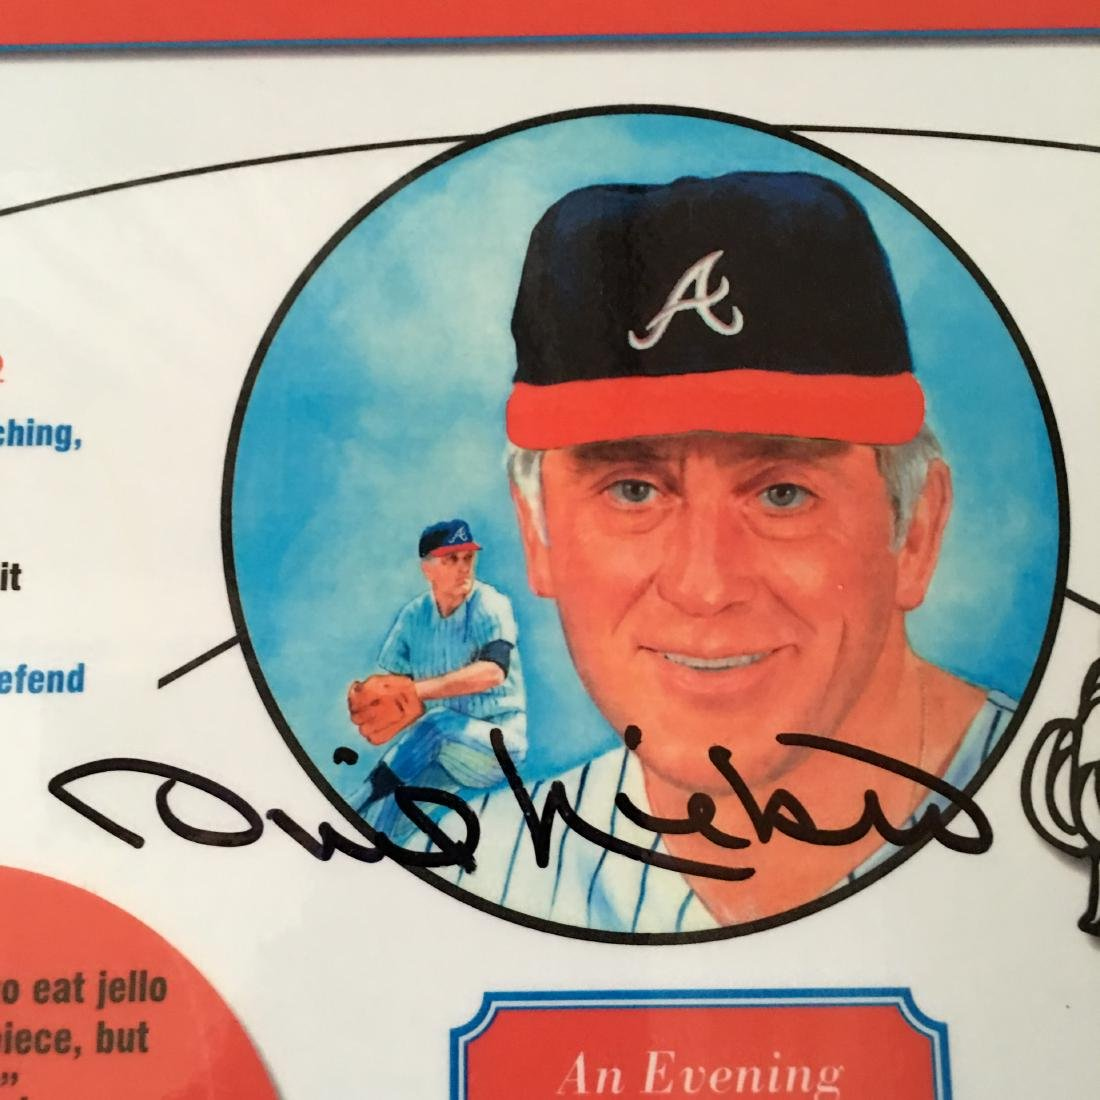 BASEBALL PHIL NIEKRO SIGNED PLACEMAT W/COA - 2